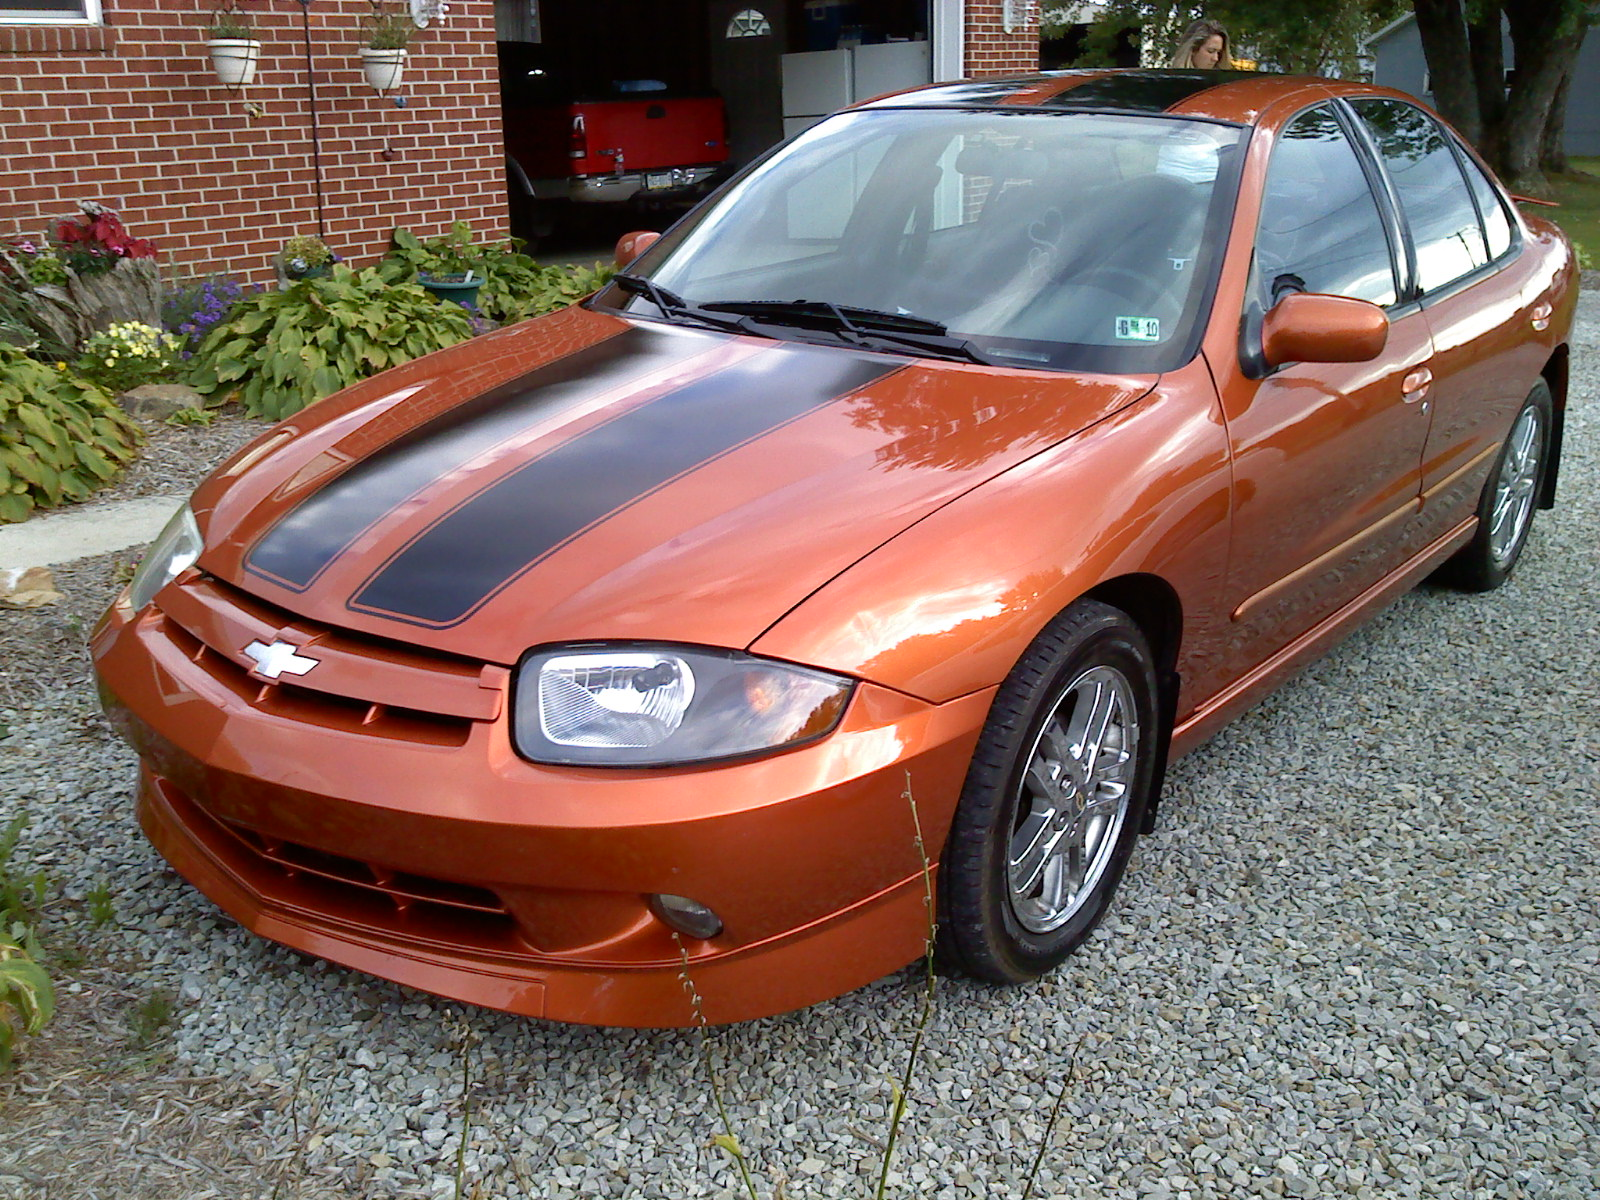 2004 chevrolet cavalier information and photos zombiedrive rh zombdrive com chevrolet cavalier 2004 service manual chevy cavalier 2004 repair manual